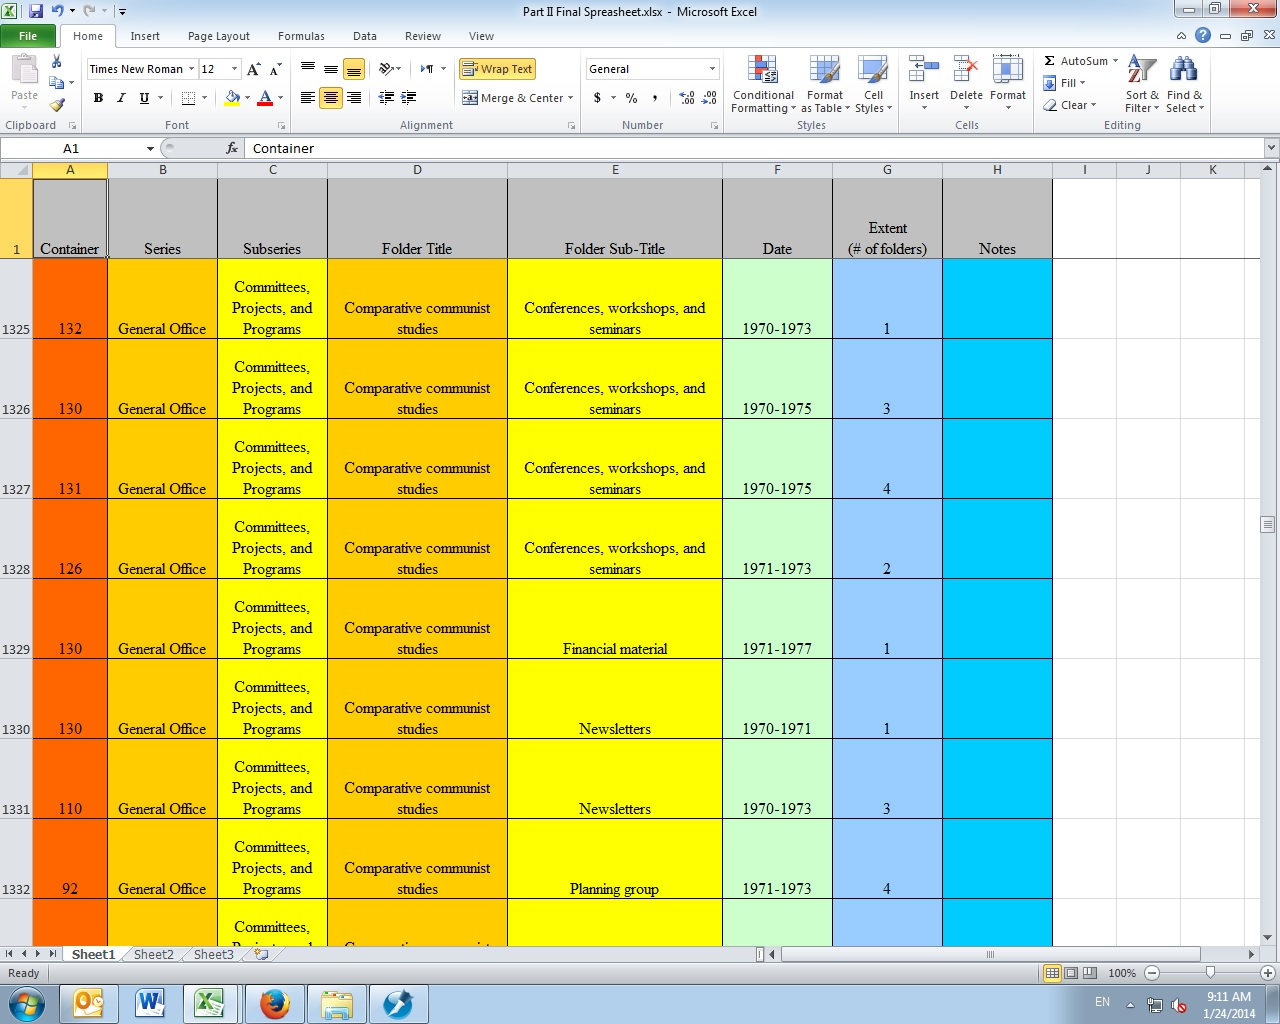 download parts of an excel spreadsheet